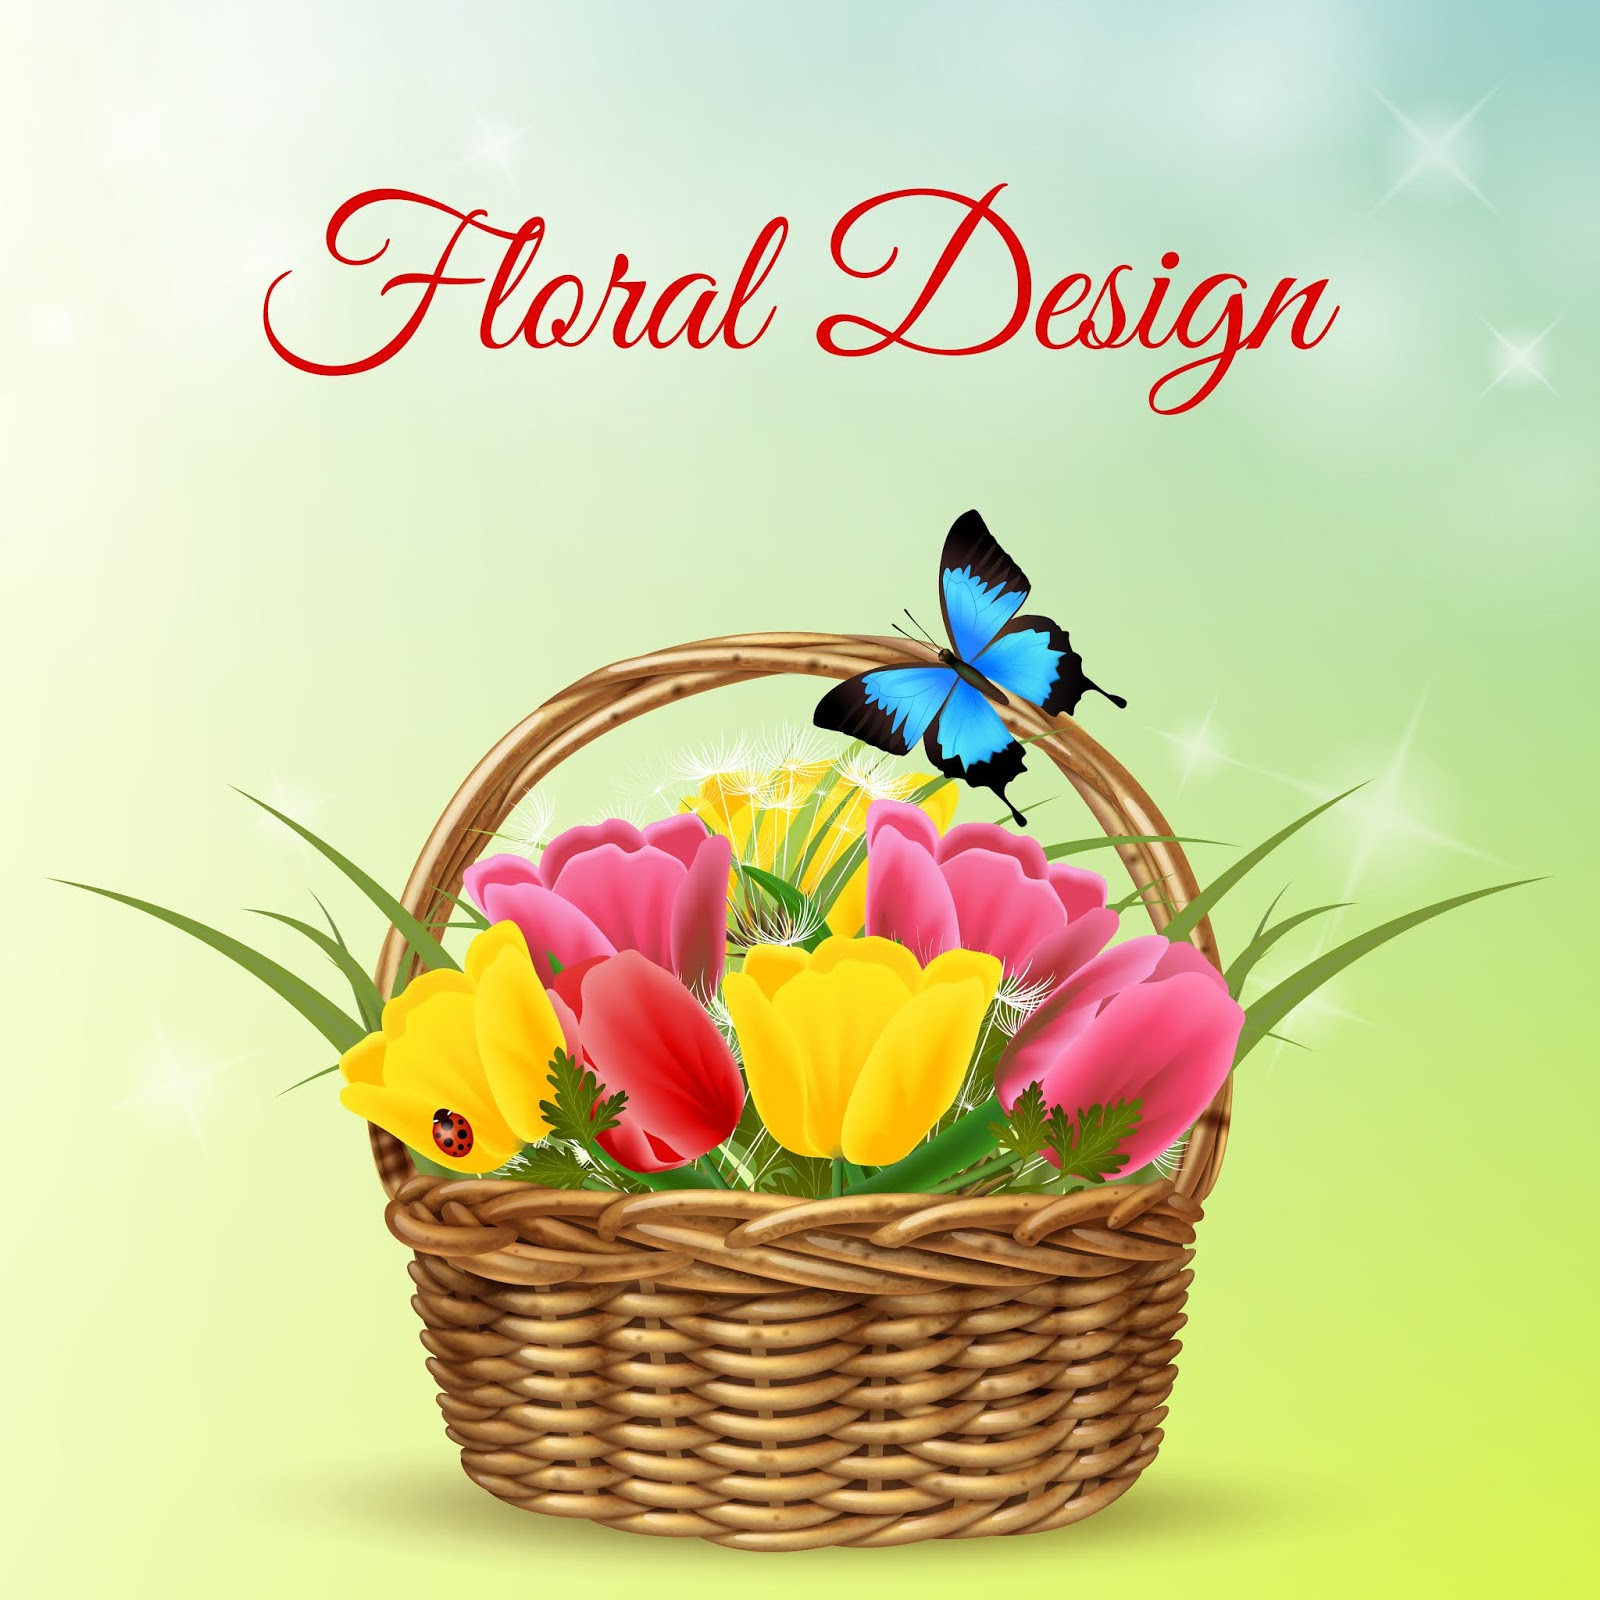 Bouquet Flowers Wicker Basket Free Download Vector CDR, AI, EPS and PNG Formats